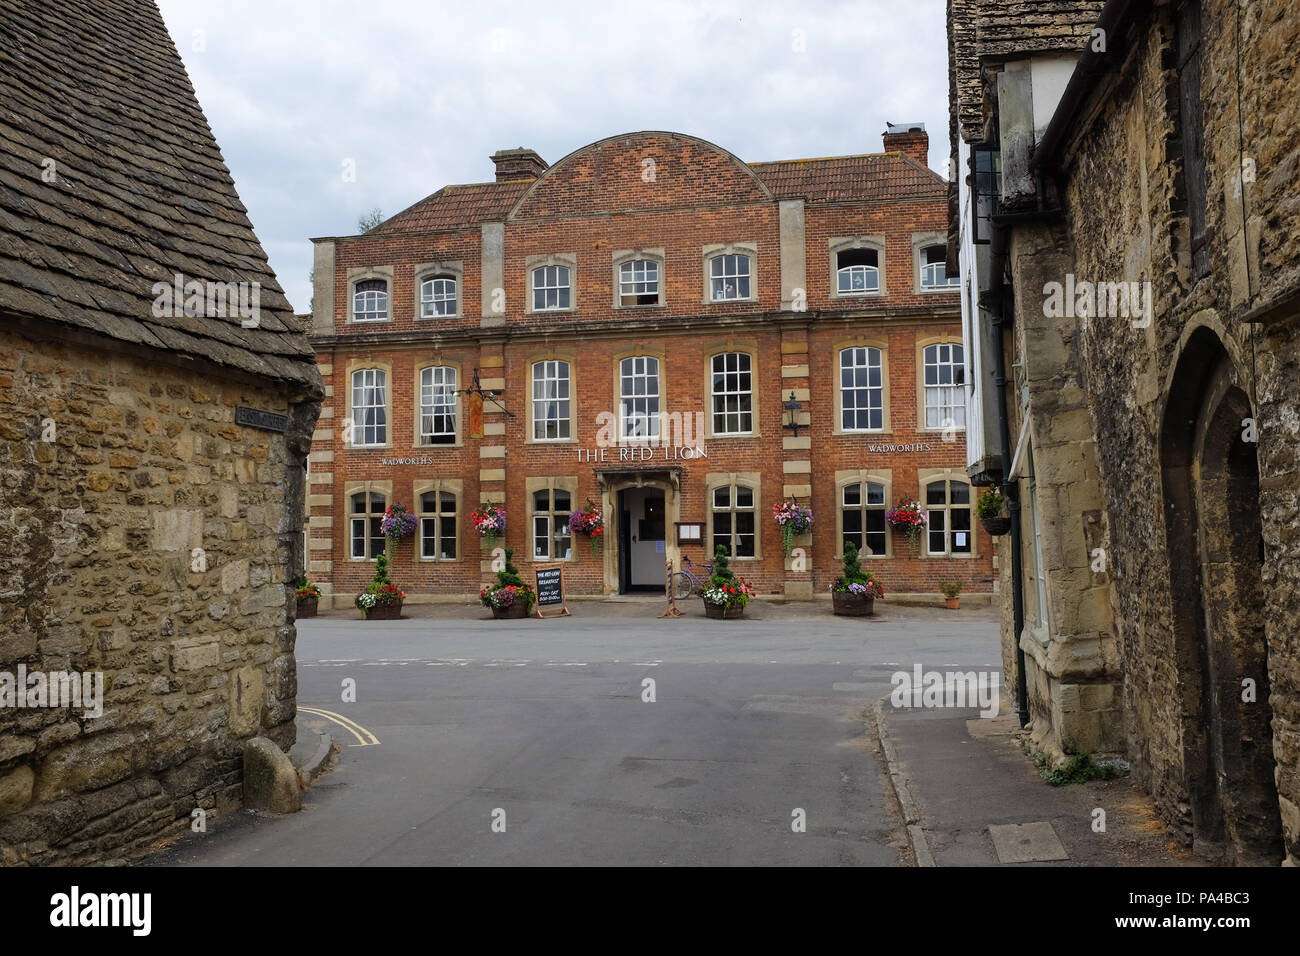 Buildings in the village of Lacock in Wiltshire, England. - Stock Image